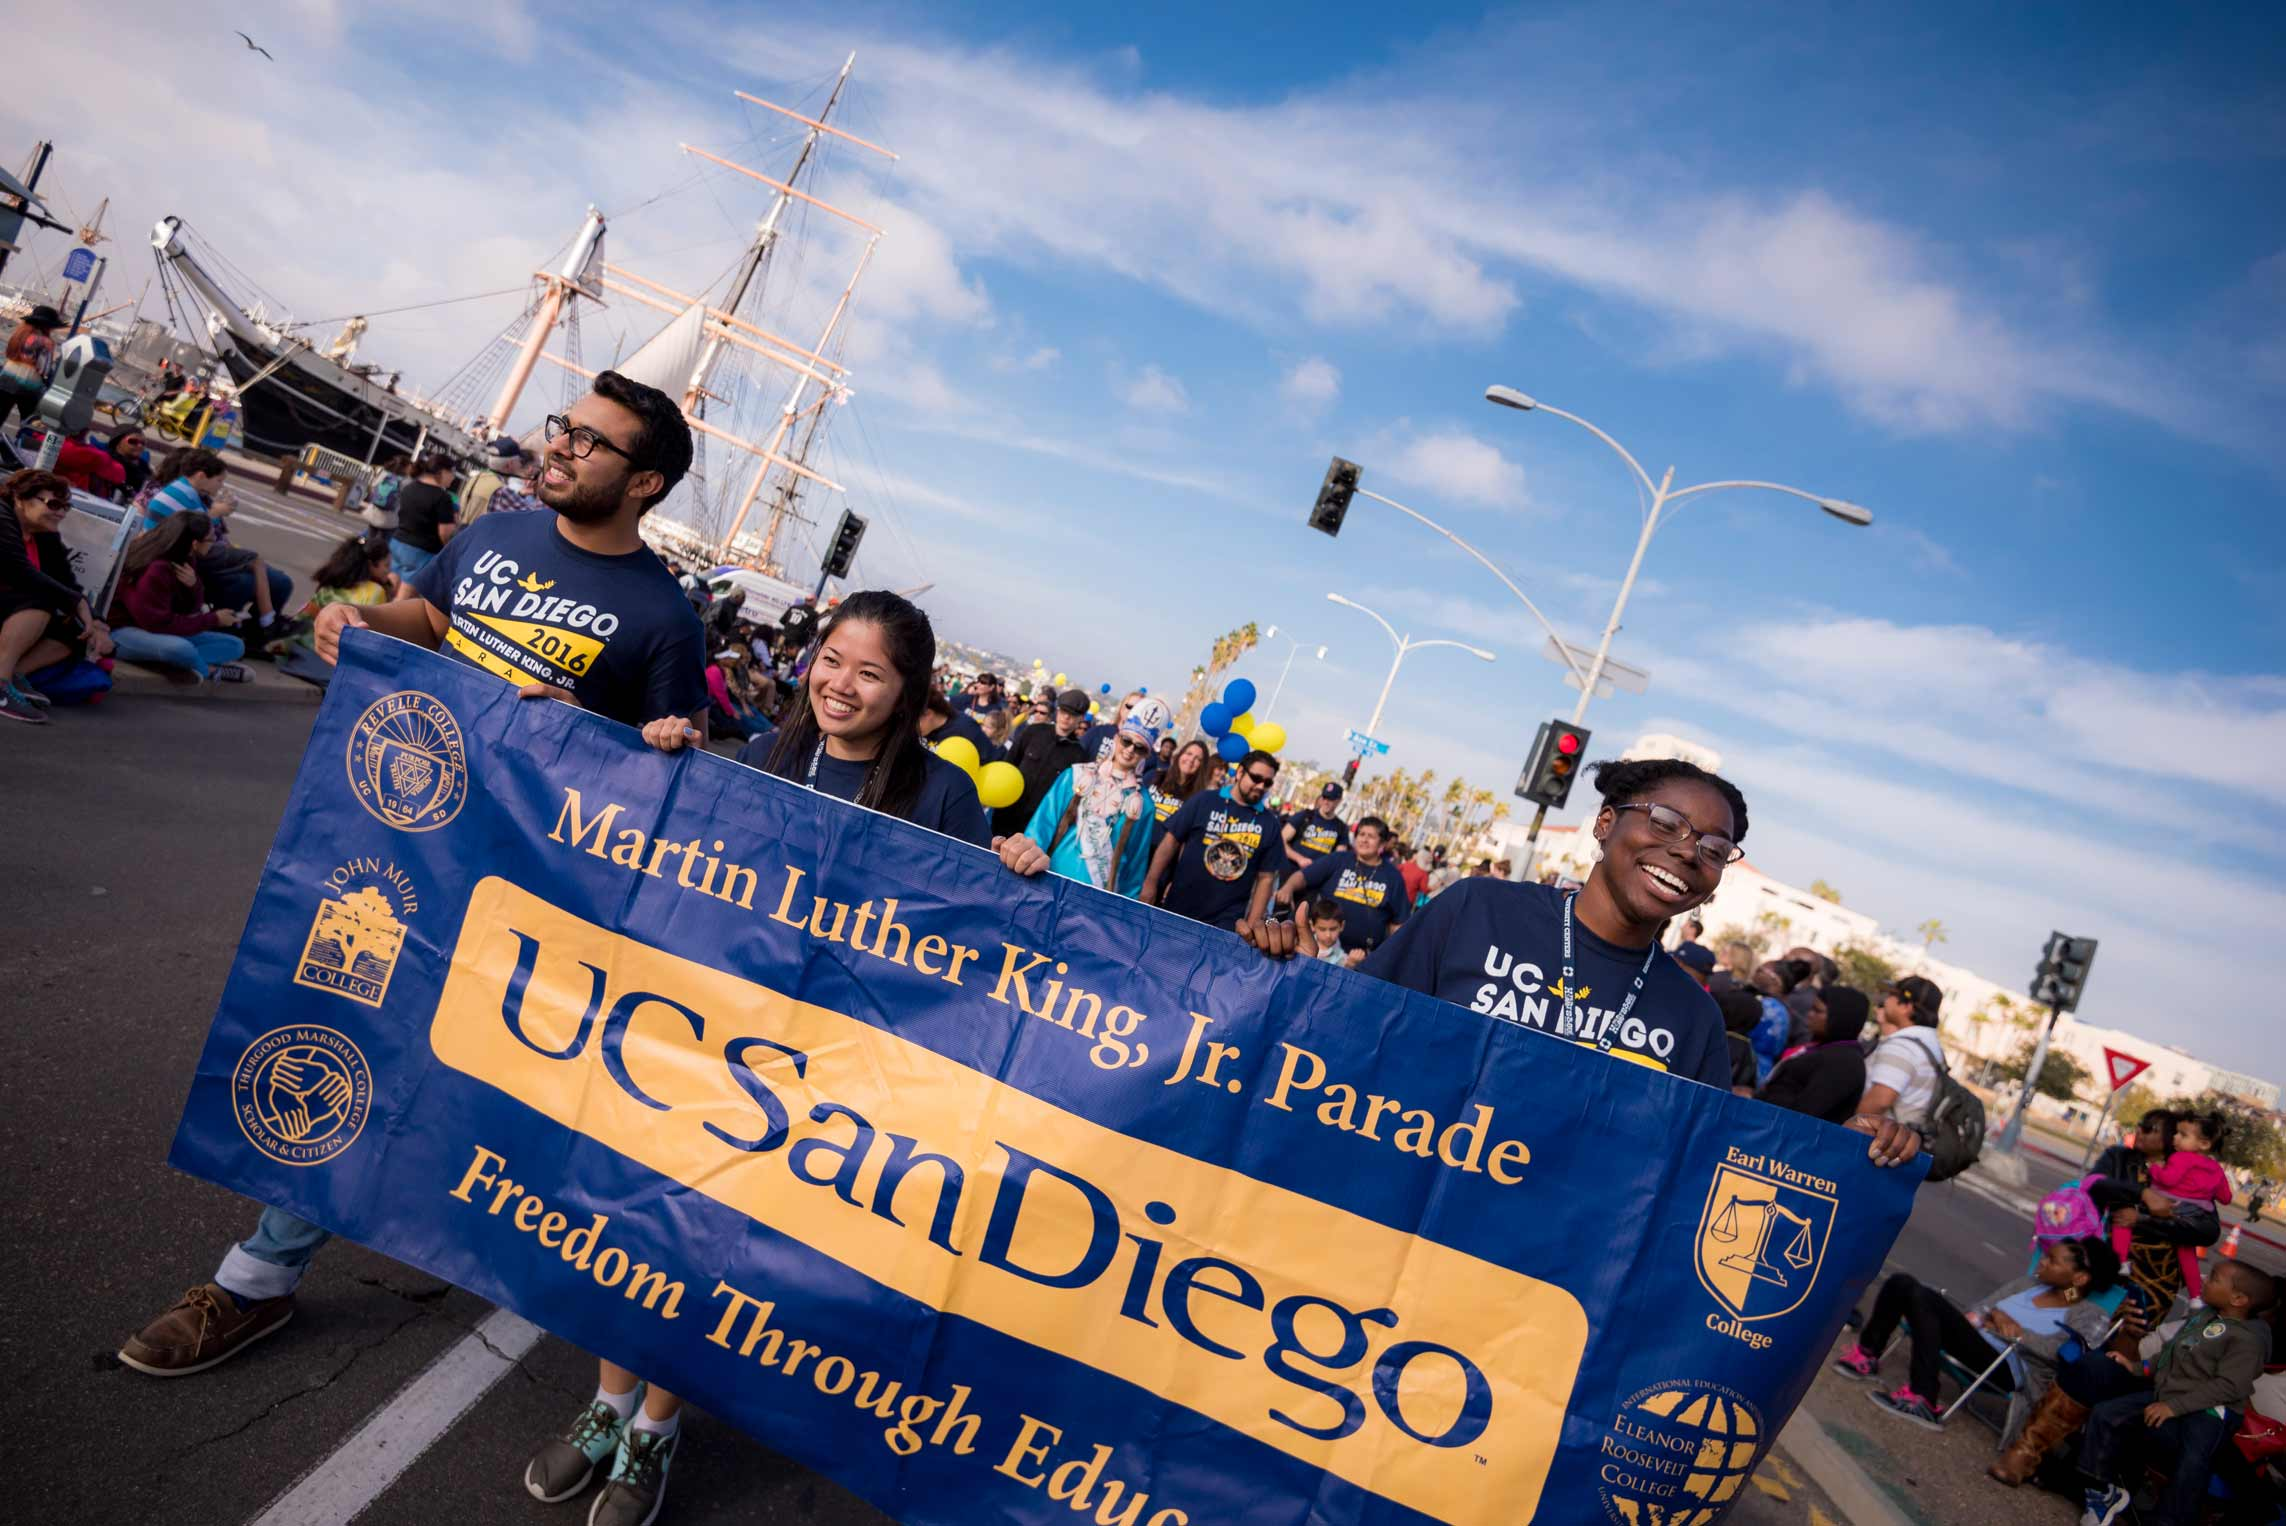 2016 Martin Luther King Jr. Parade and Day of Service